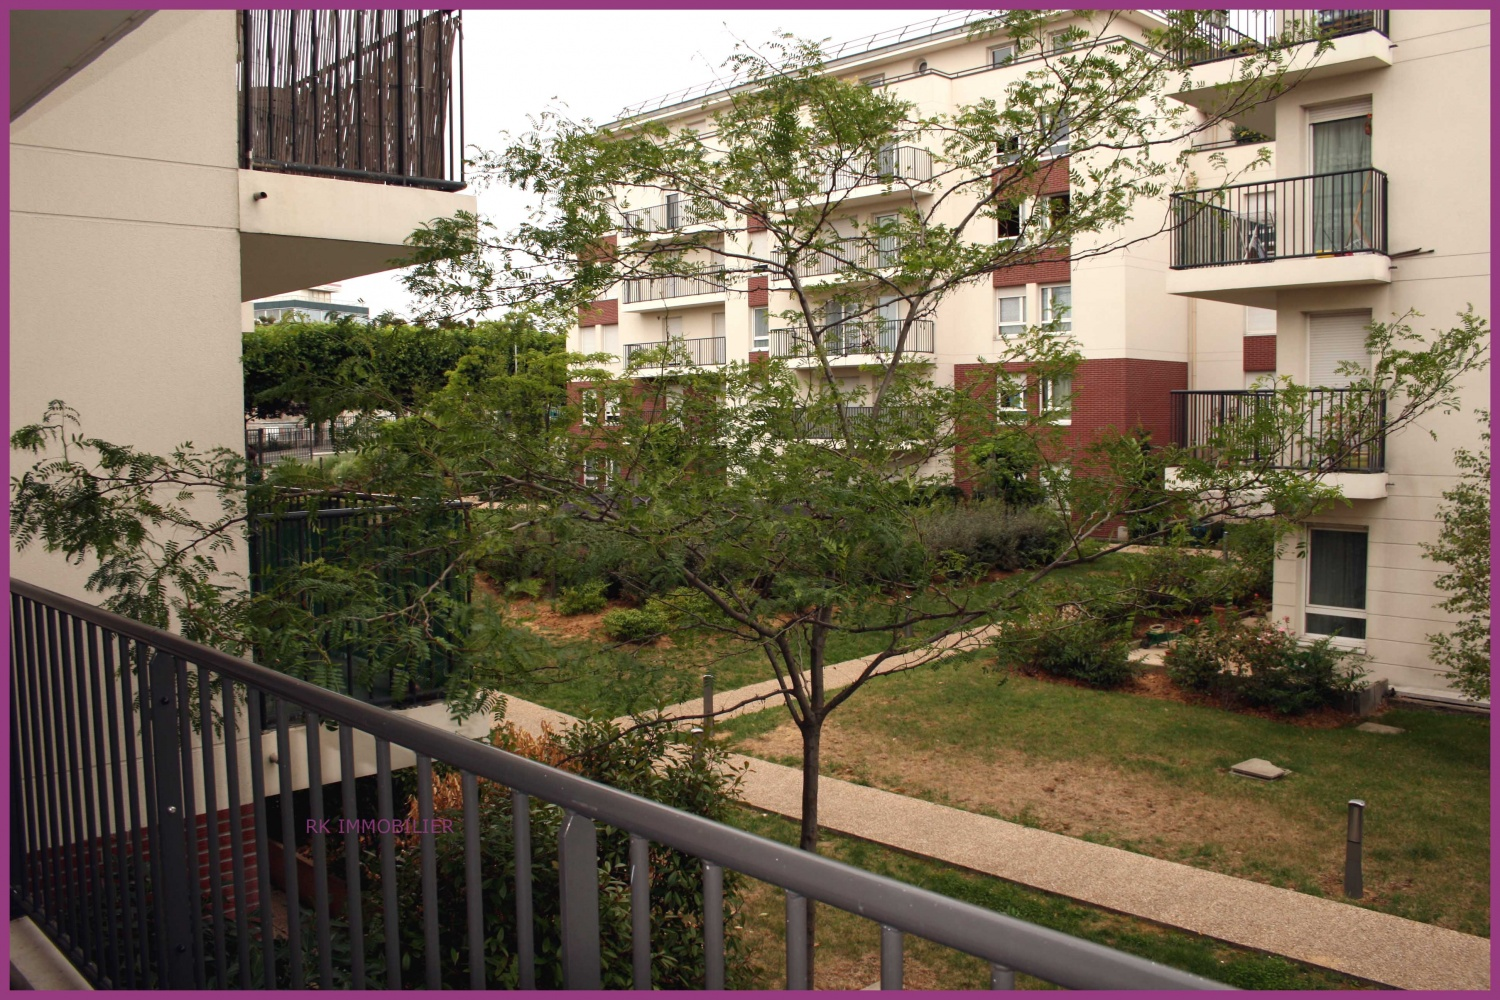 Vendu appartement f3 aubervilliers rk immobilier for Immobilier f3